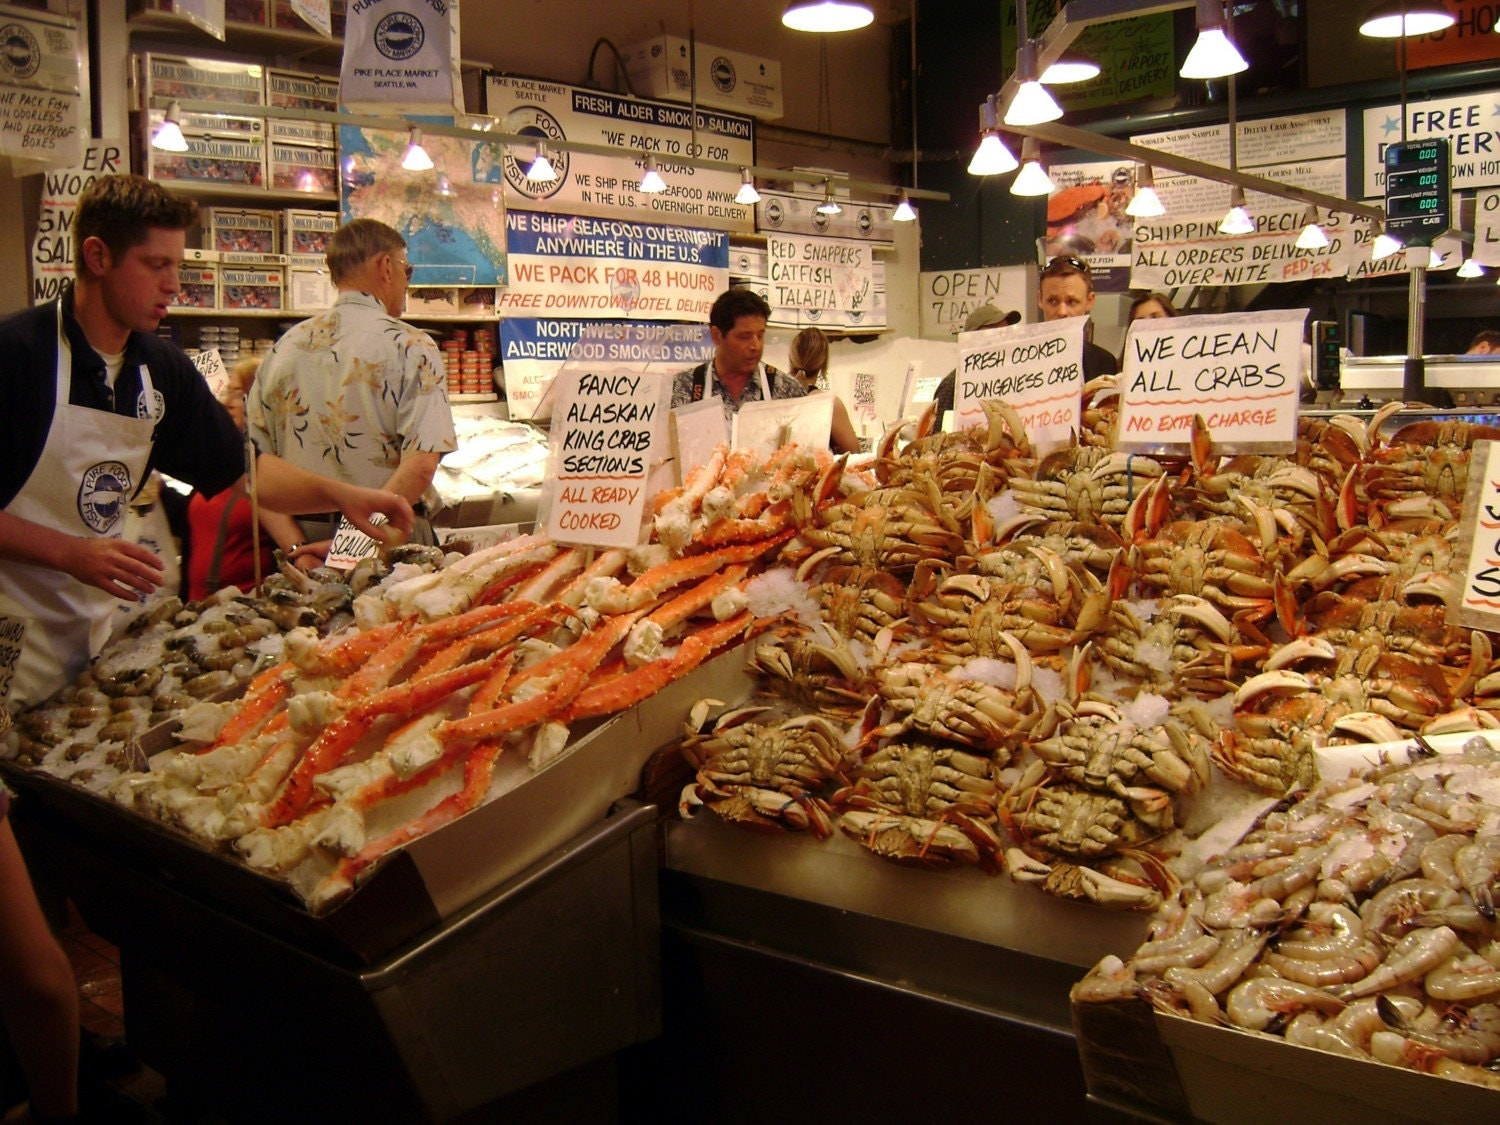 Seafood market in seattle ii fine art by bluedoorphotography1 for Columbus fish market menu